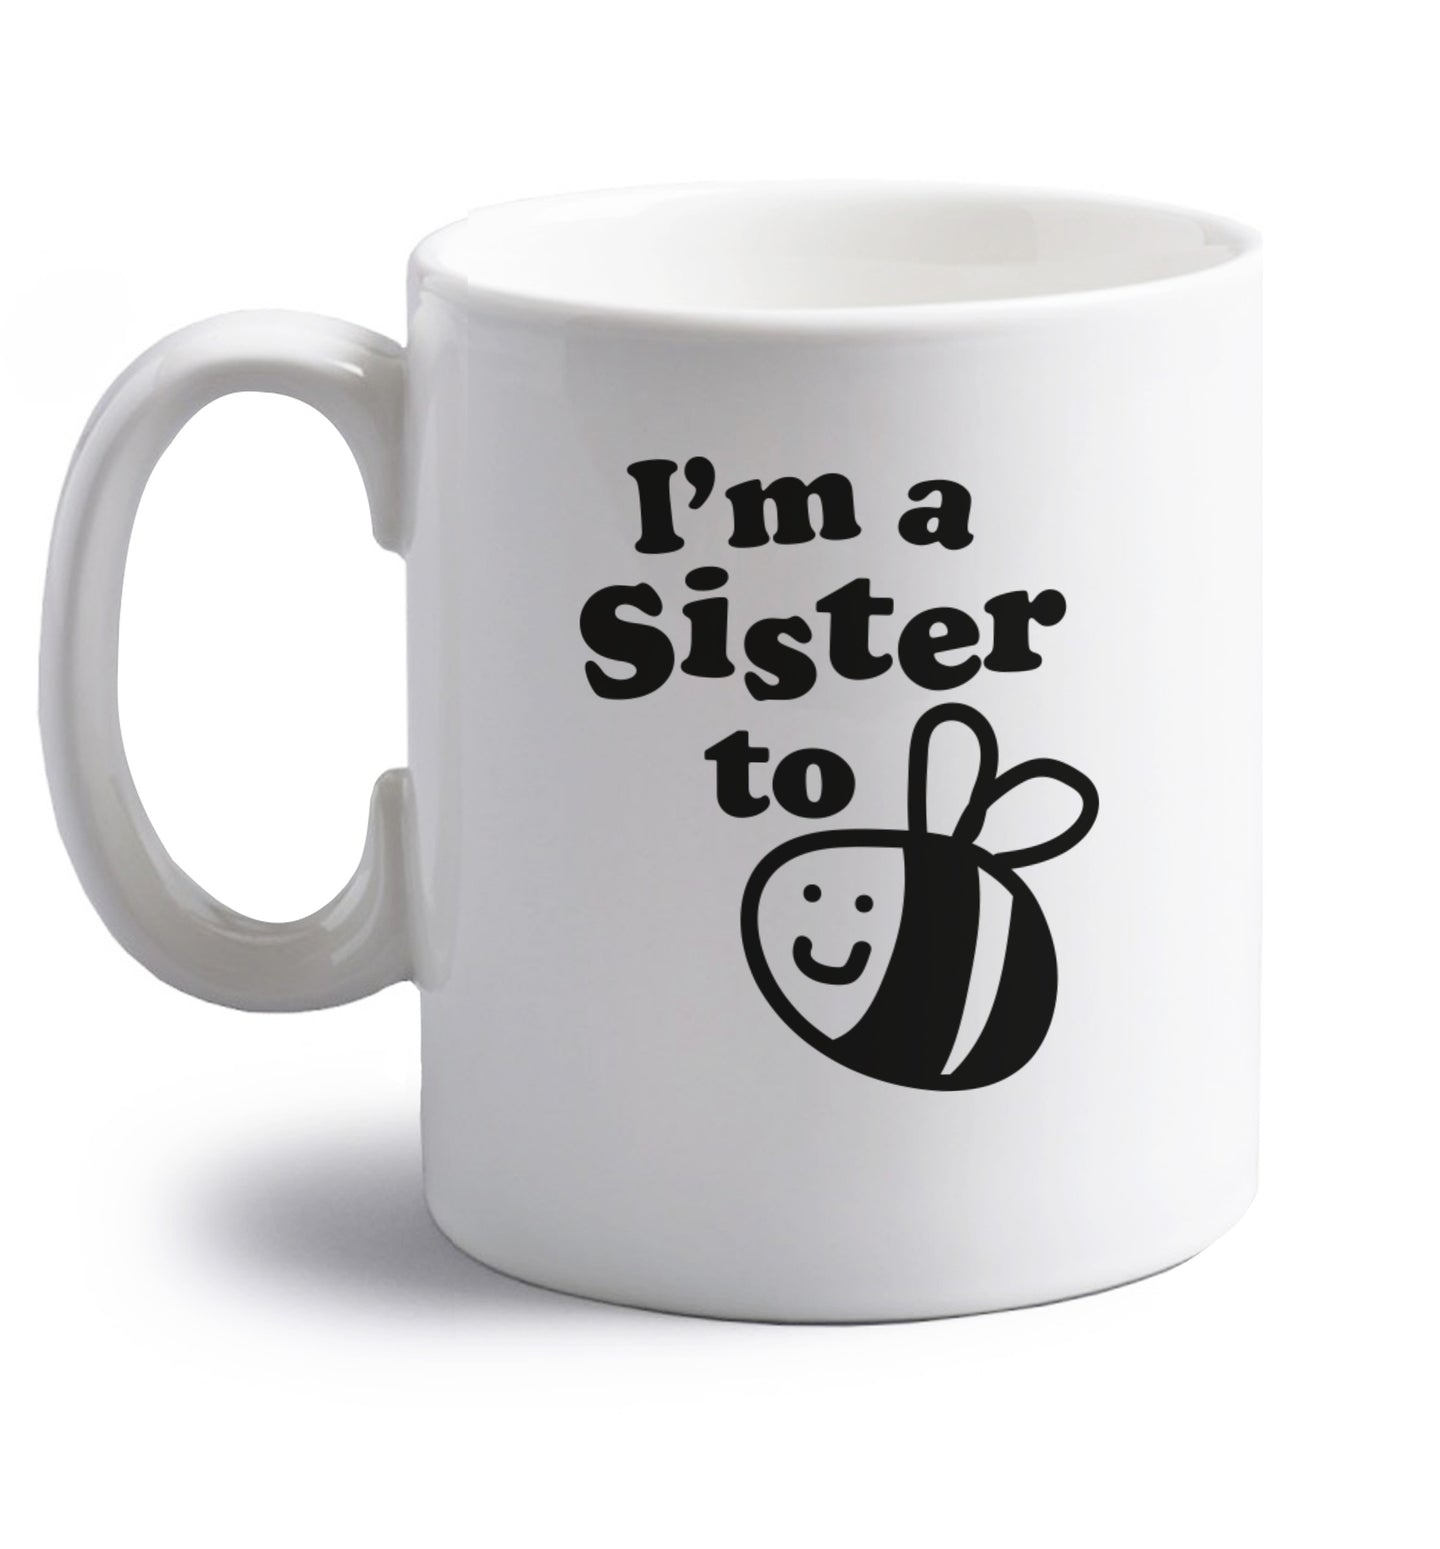 I'm a sister to be right handed white ceramic mug